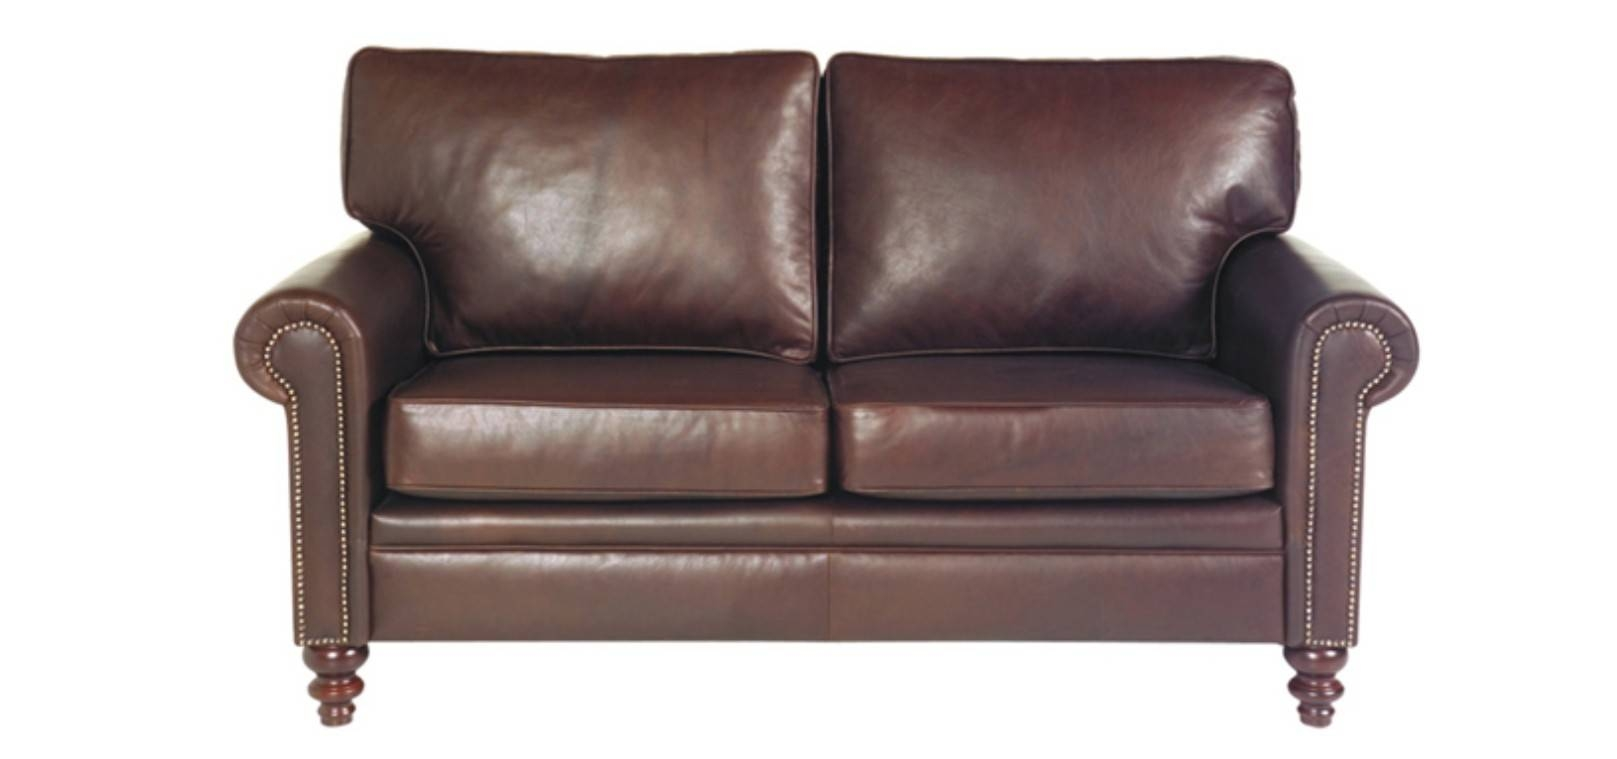 Da Lewis Furniture Store - Beautiful, Handcrafted, New Zealand regarding Canterbury Leather Sofas (Image 14 of 30)